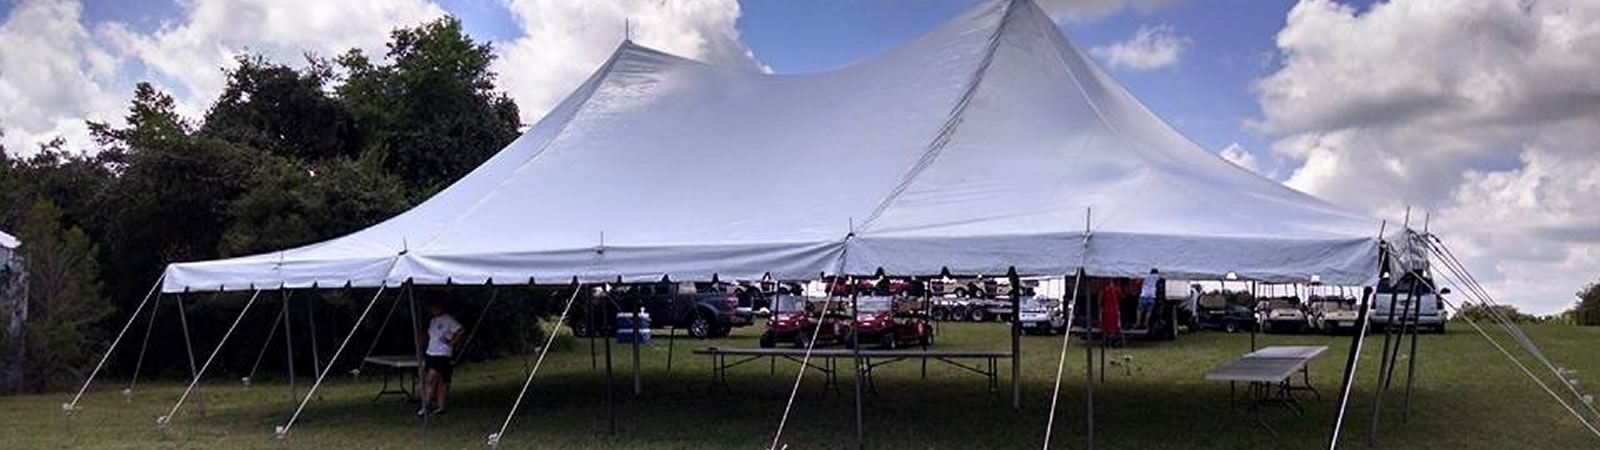 Tents Over Texas Pole And Frame Tent Rentals Brenham Tx